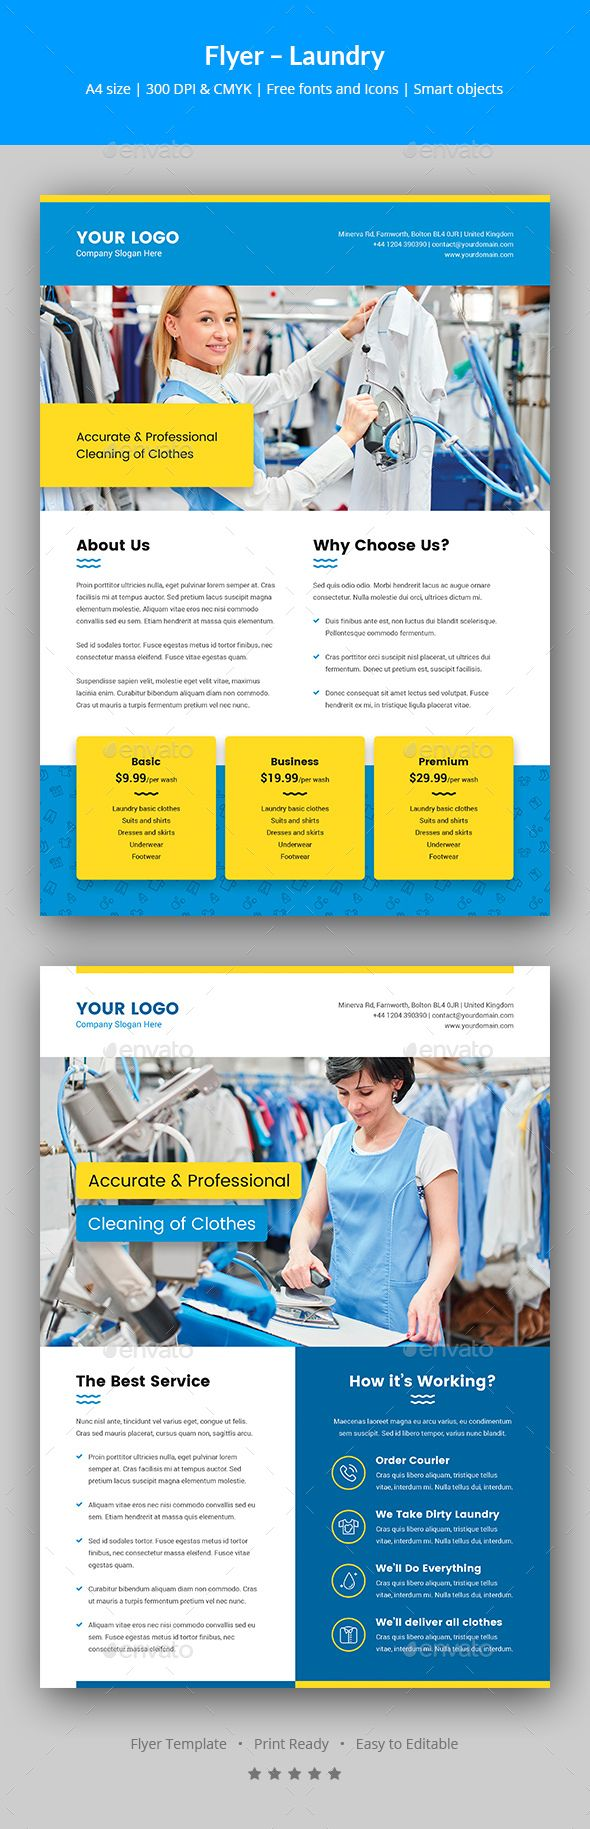 Flyer laundry service laundry service laundry and flyer template flyer 20laundry service flyer template for many applications you can easily edit saigontimesfo